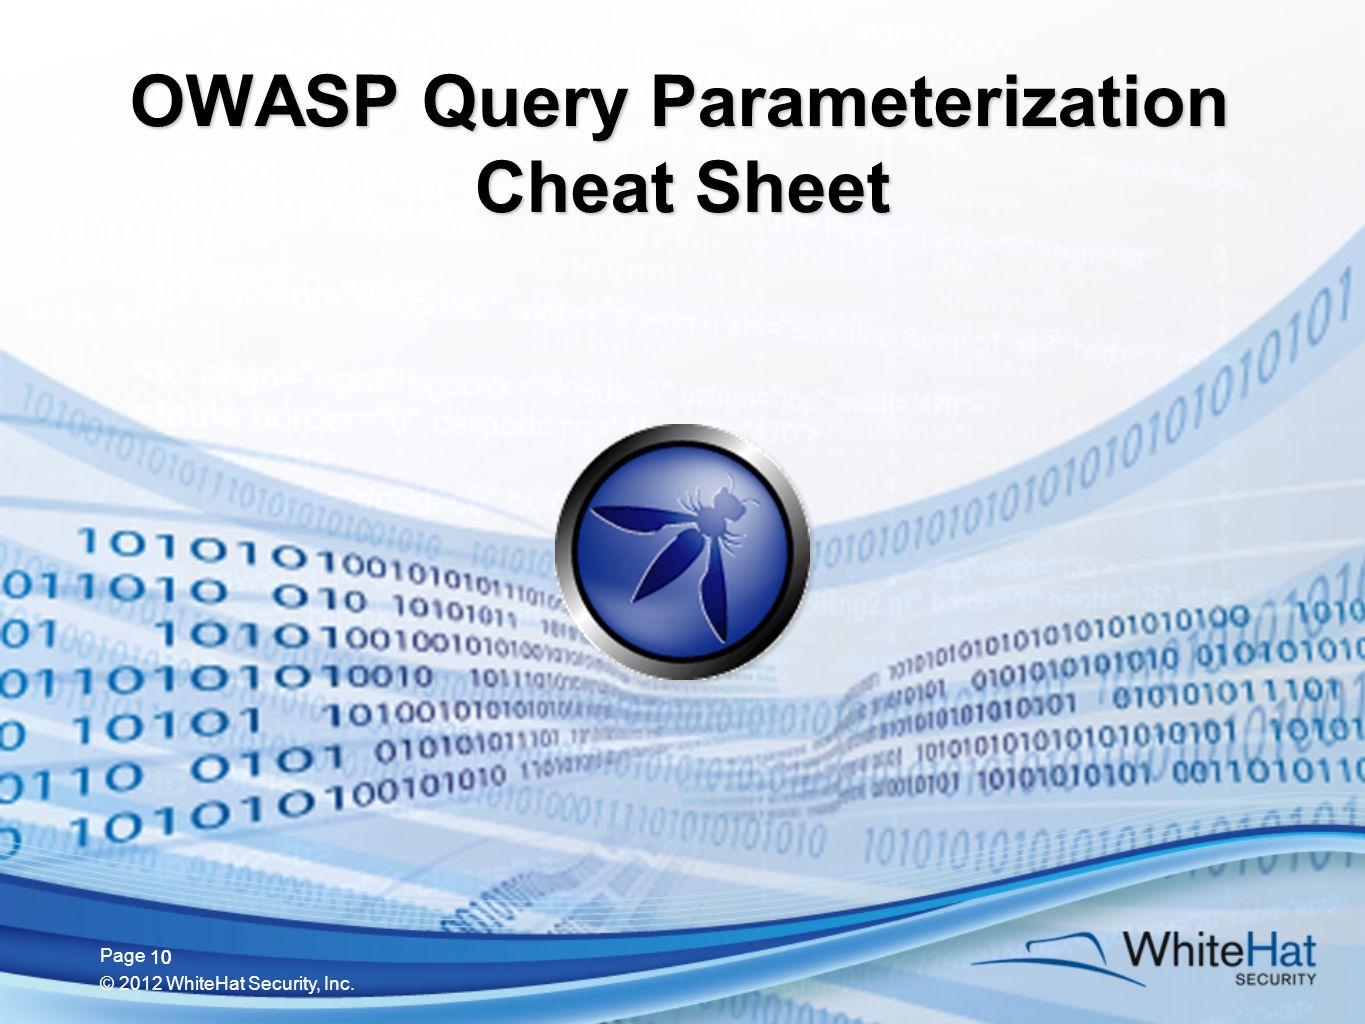 10 Page © 2012 WhiteHat Security, Inc. 10 OWASP Query Parameterization Cheat Sheet